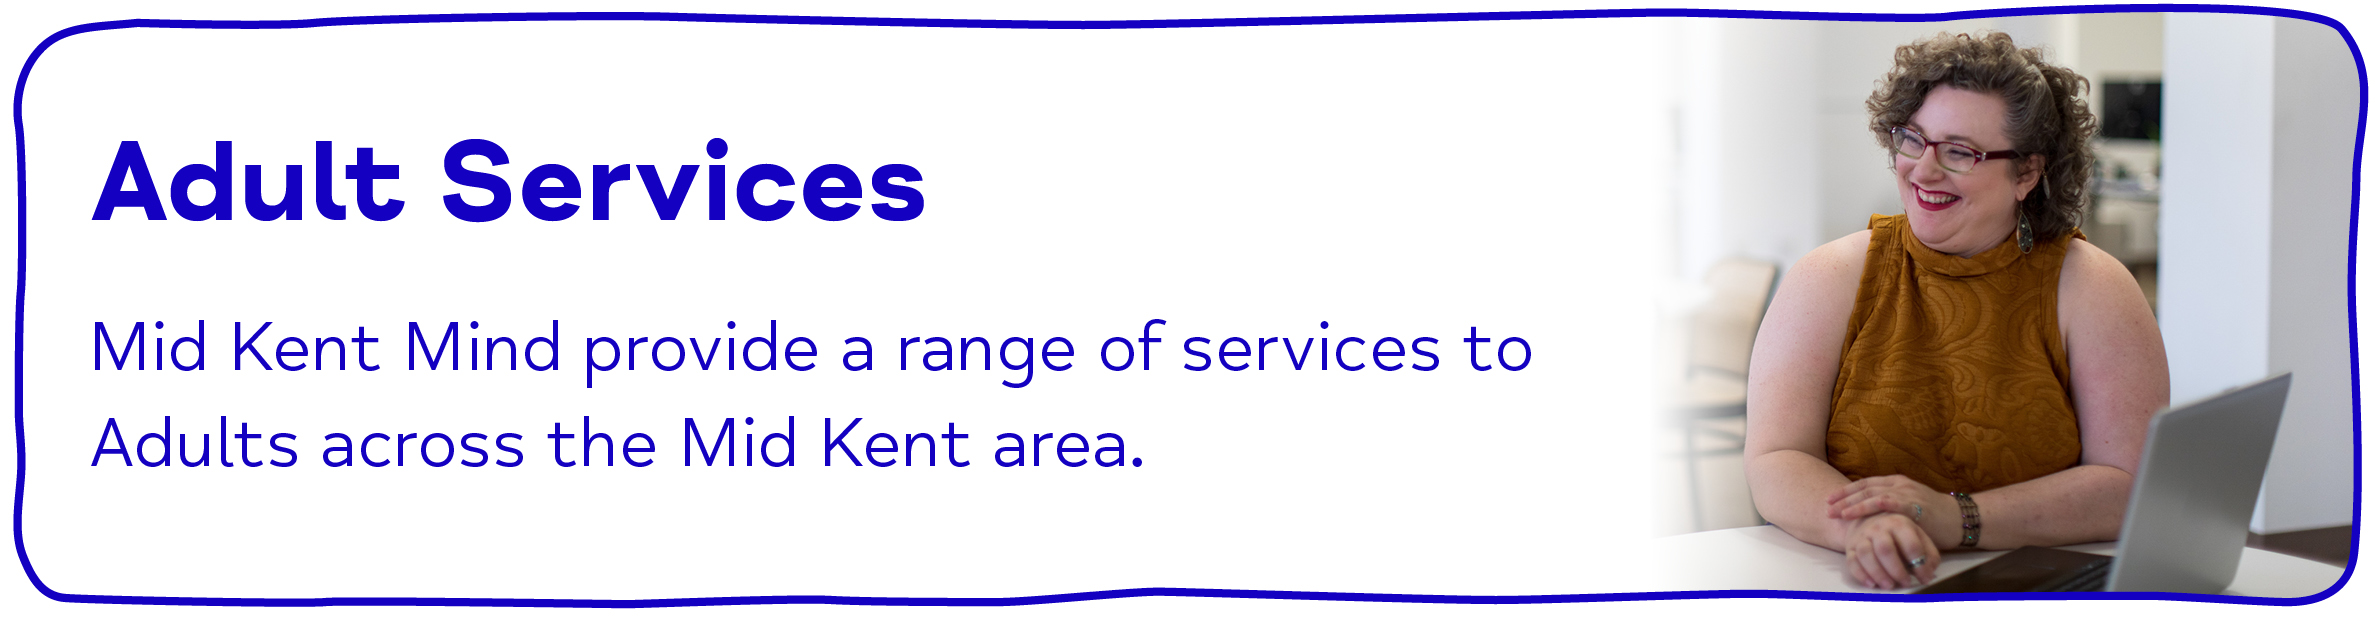 Adult Services Mid Kent Mind provide a range of services to  Adults across the Mid Kent area.